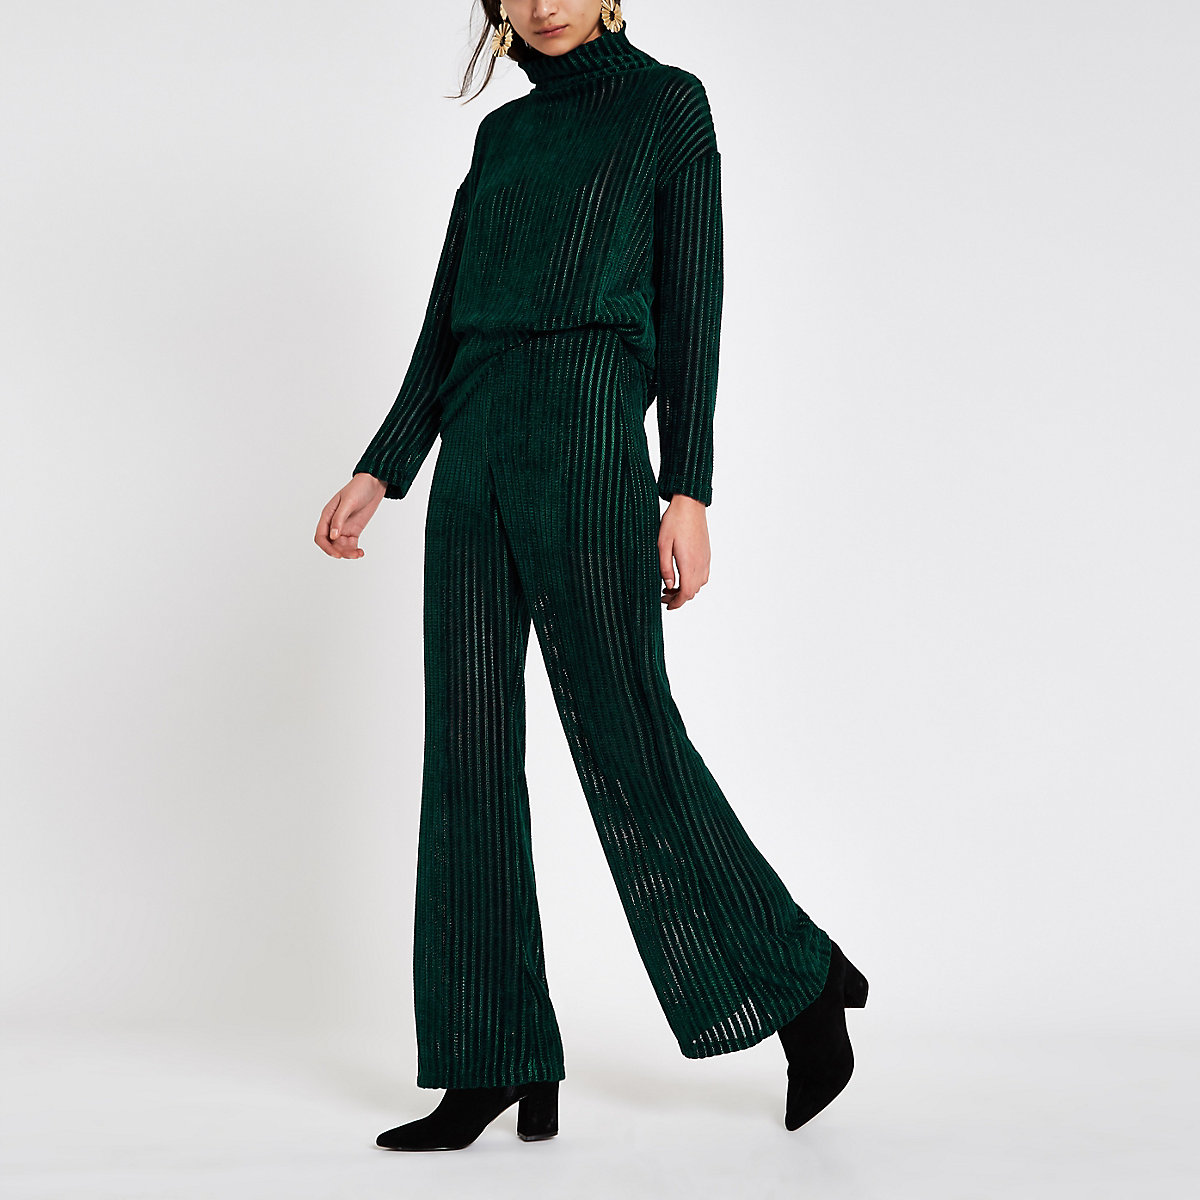 Dark green pull on wide leg pants